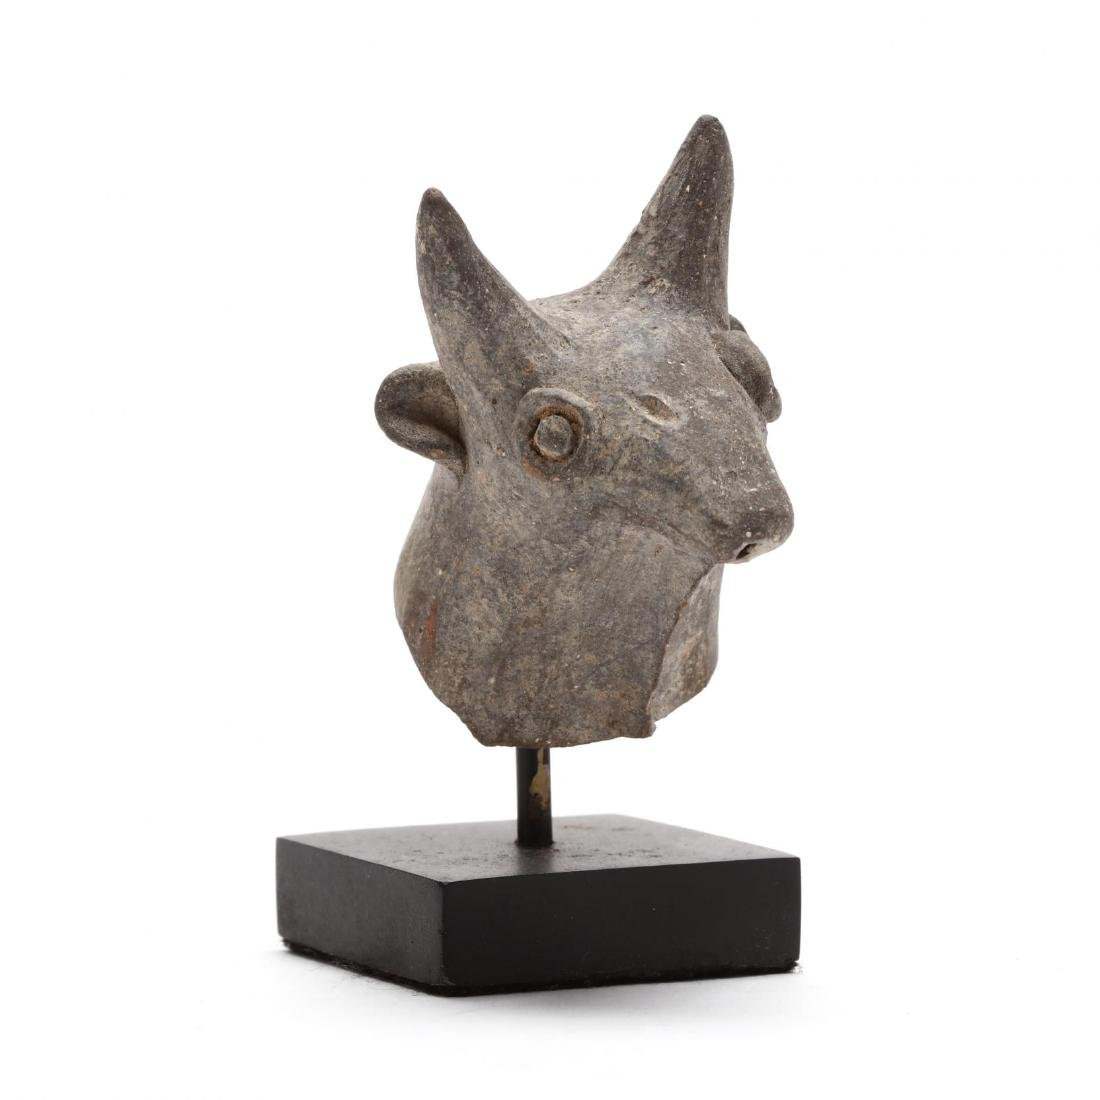 Cypriot Bronze Age Head of a Bull From a Larger Piece